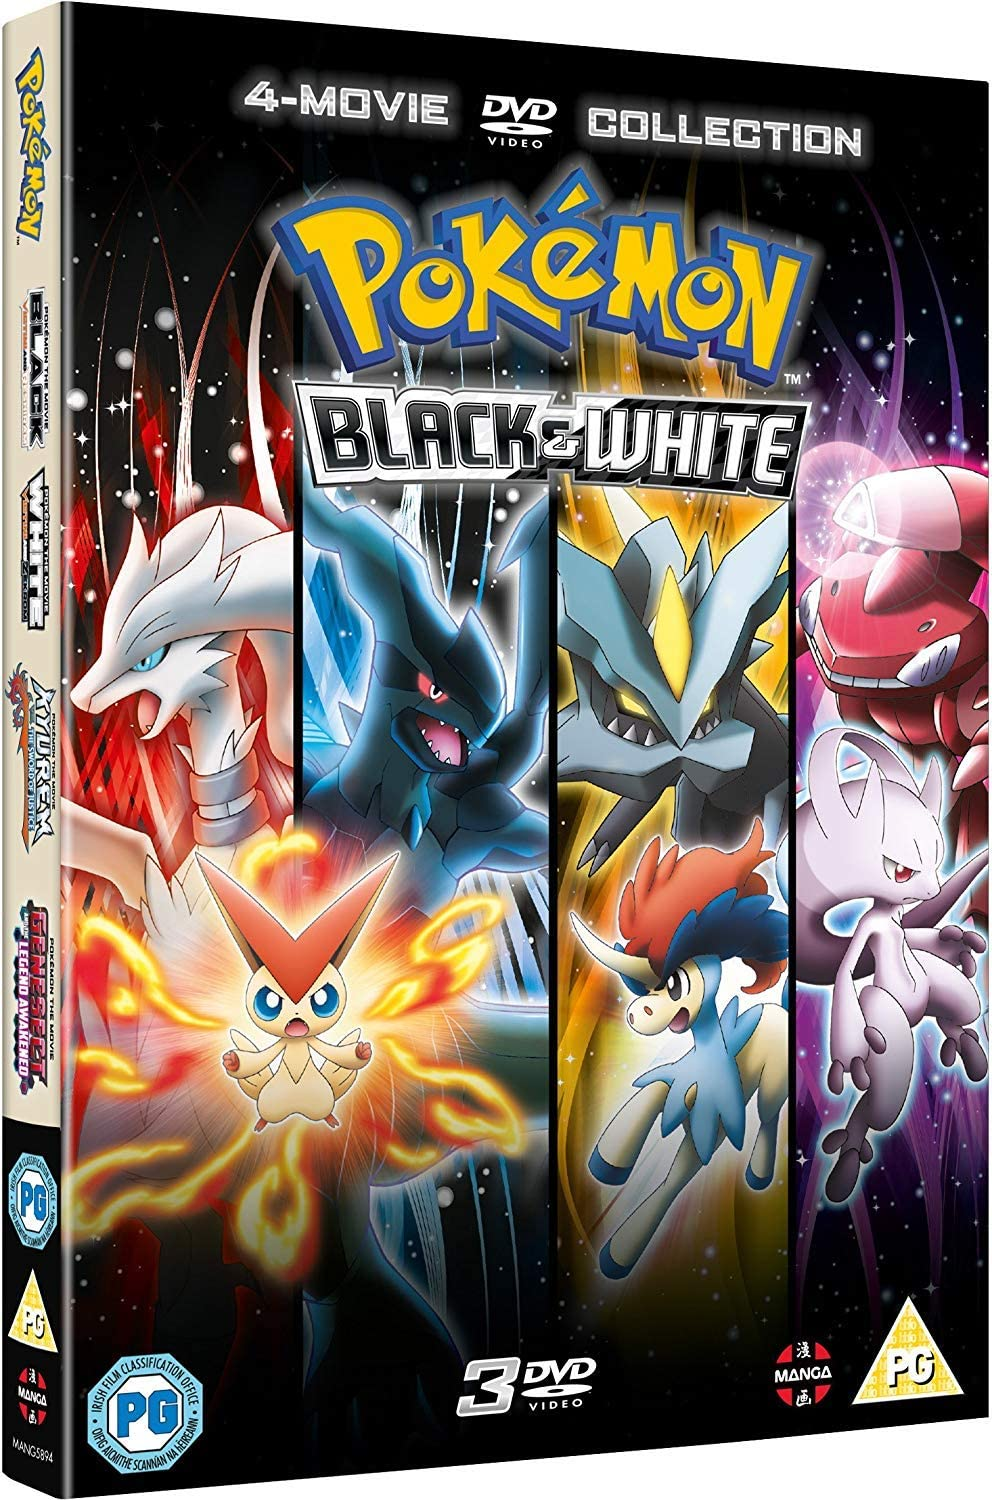 Pokemon Movie 14-16 Collection: Black & White Victini and Zekrom/Victini  and Reshiram, Kyurem Vs. The Sword of Justice, Genesect and the Legend  Awakened DVD: Amazon.co.uk: DVD & Blu-ray